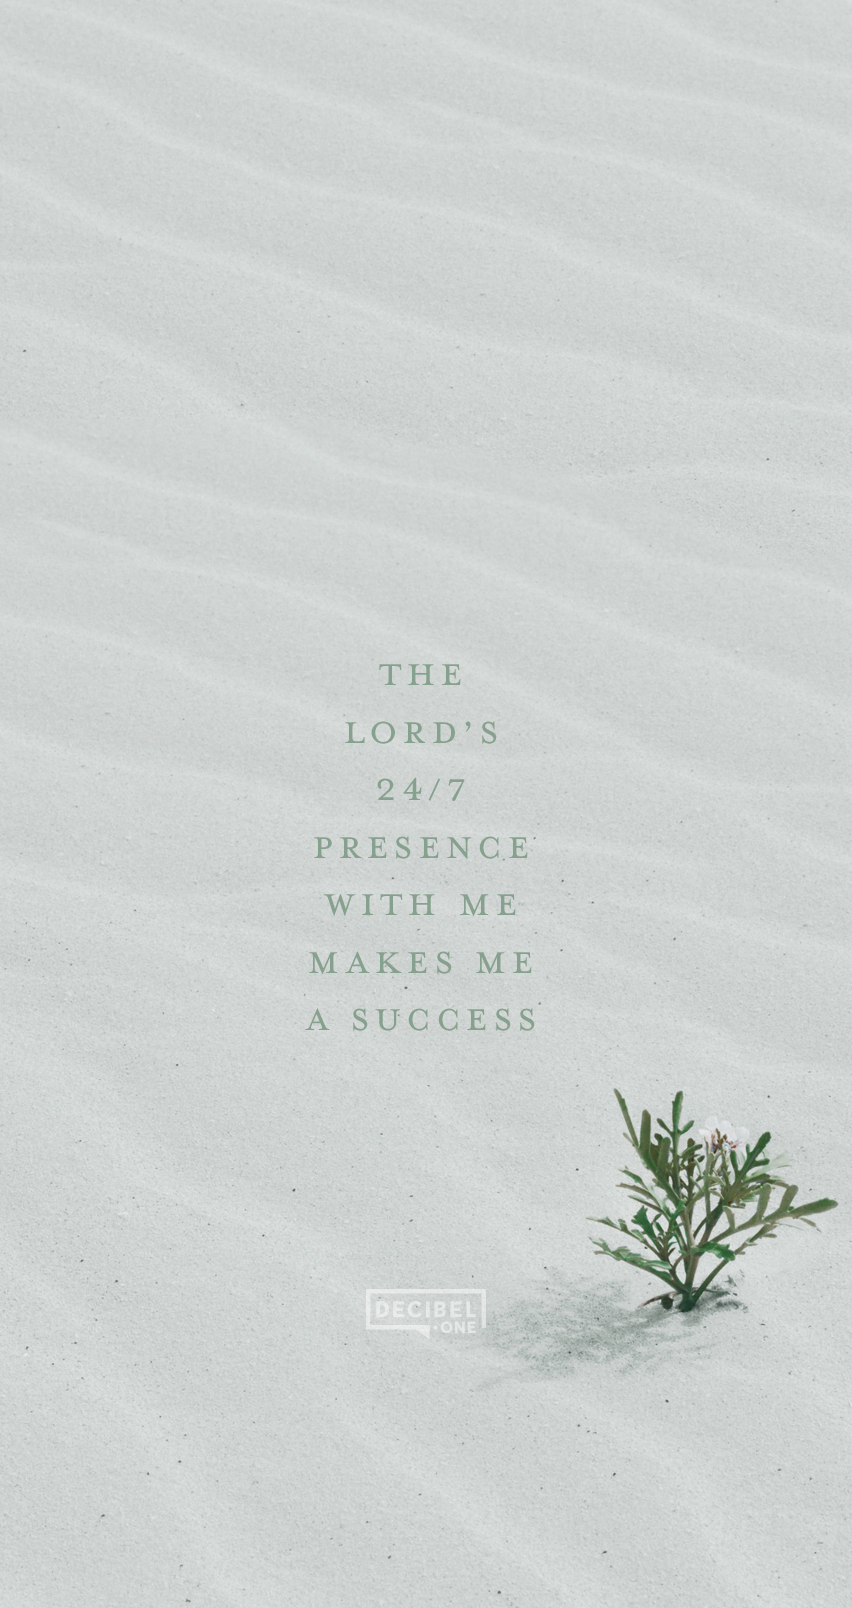 The Lord's 24/7 presence with me makes me a success